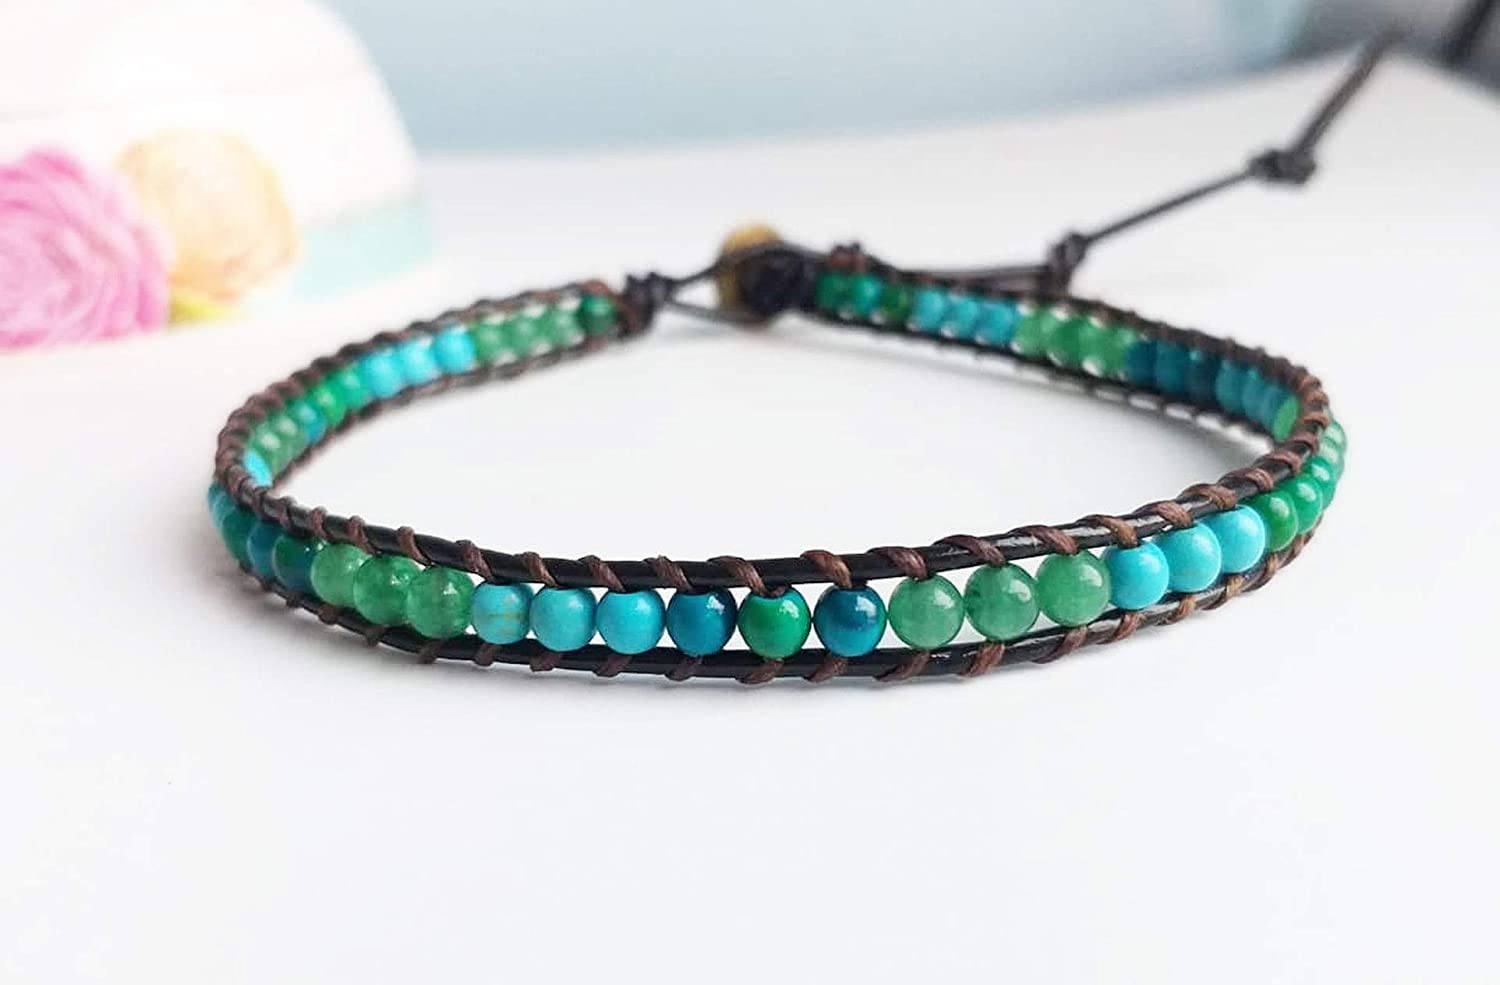 Turquoise chrysocolla green jade Ranking TOP7 stone necklaces leather Rare choker